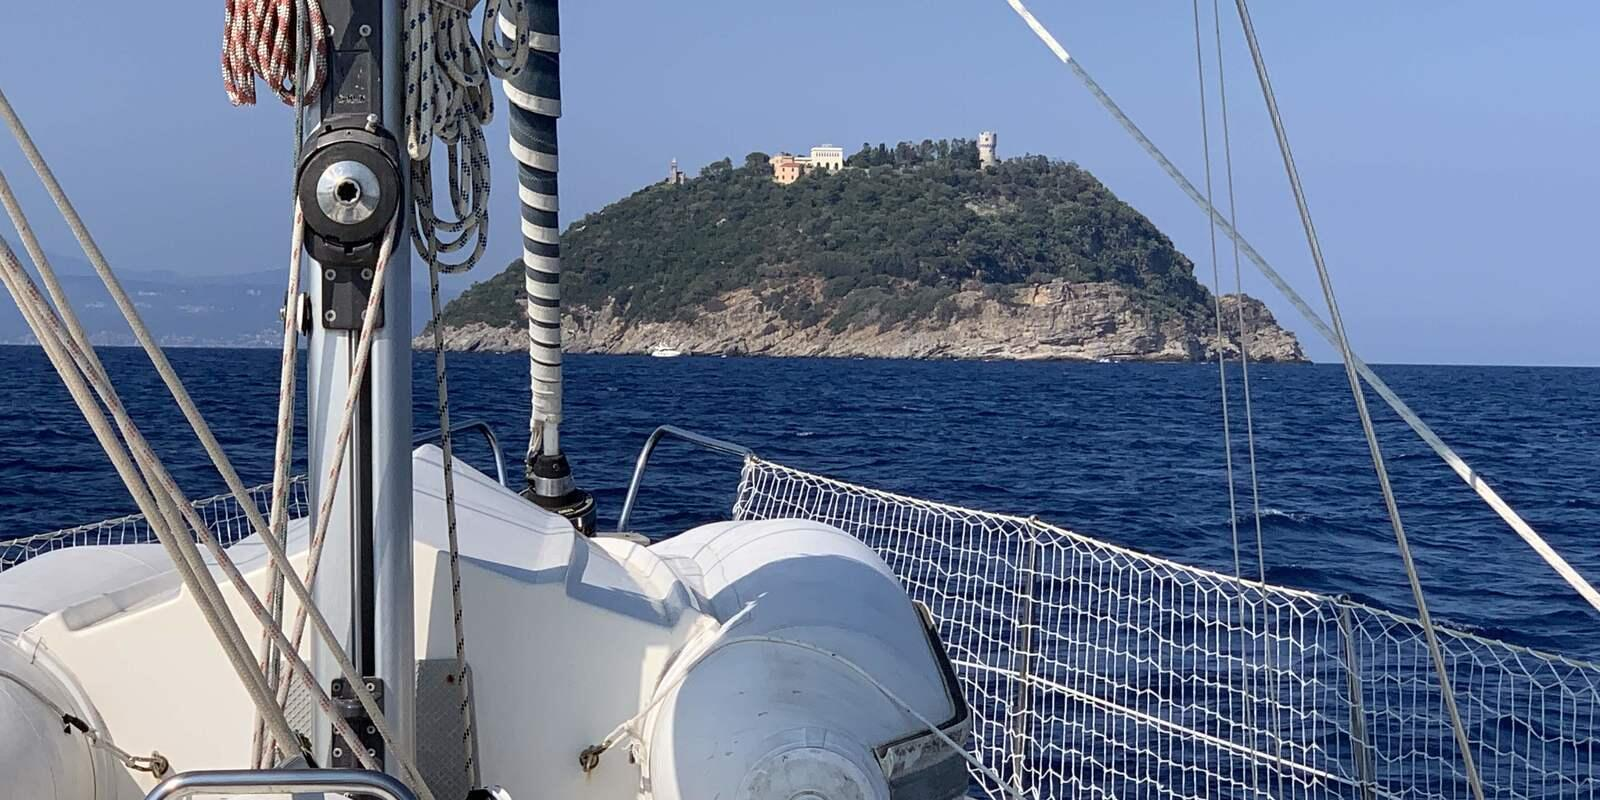 Sailing towards the Gallinara